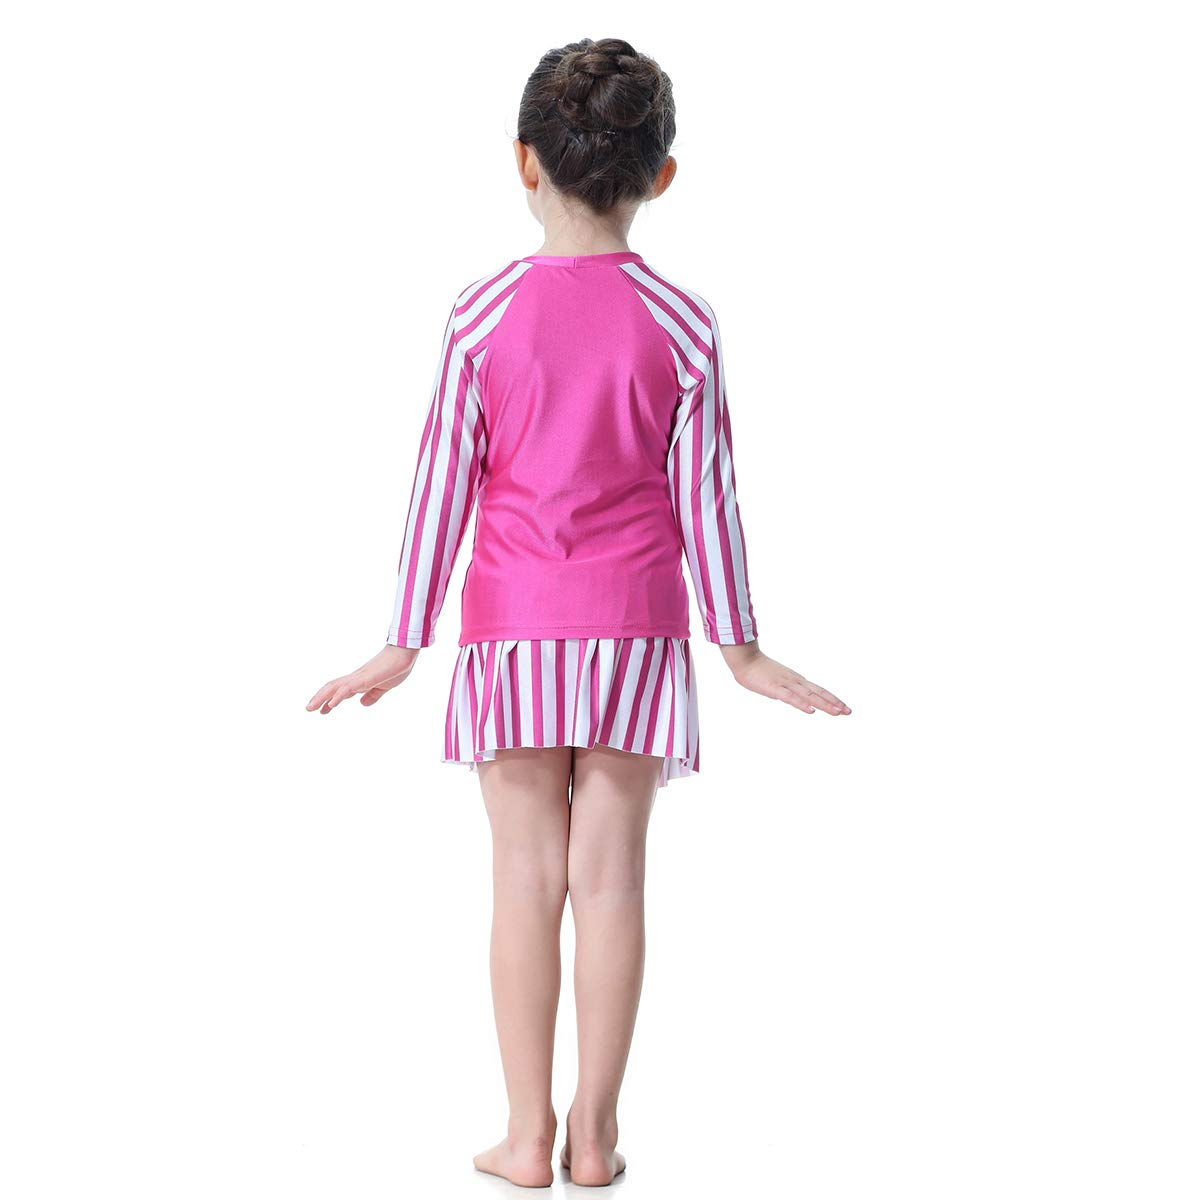 1 Pc Muslim Arab Girls Swimsuit Long-Sleeved Stitching Conservative Split Swimwear H2005 for Girls and Teens-100cm Rosy